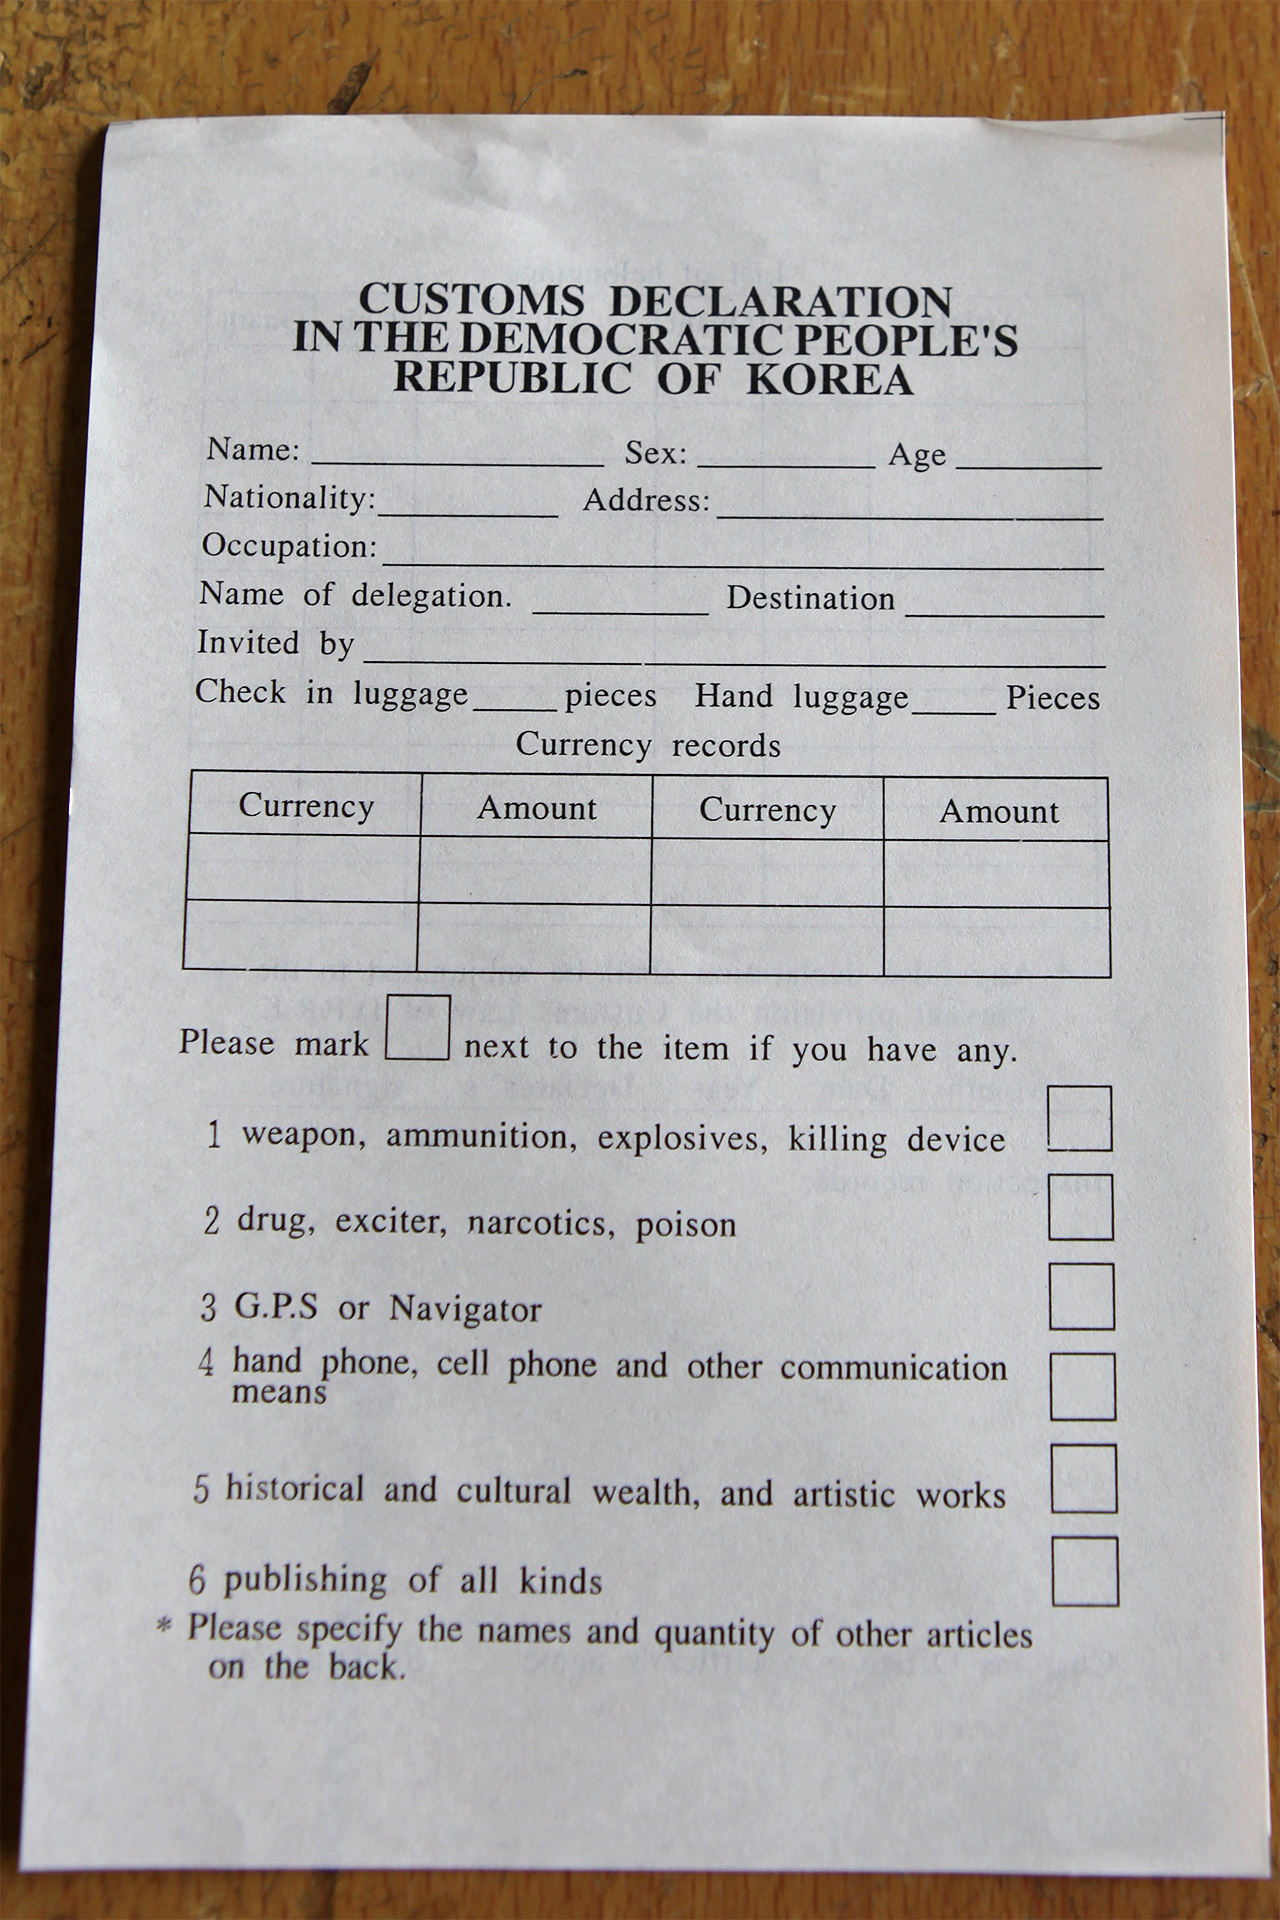 North Korean Customs And Traditions Our Work North Korea Customs Declaration () North Korean Customs And Traditions